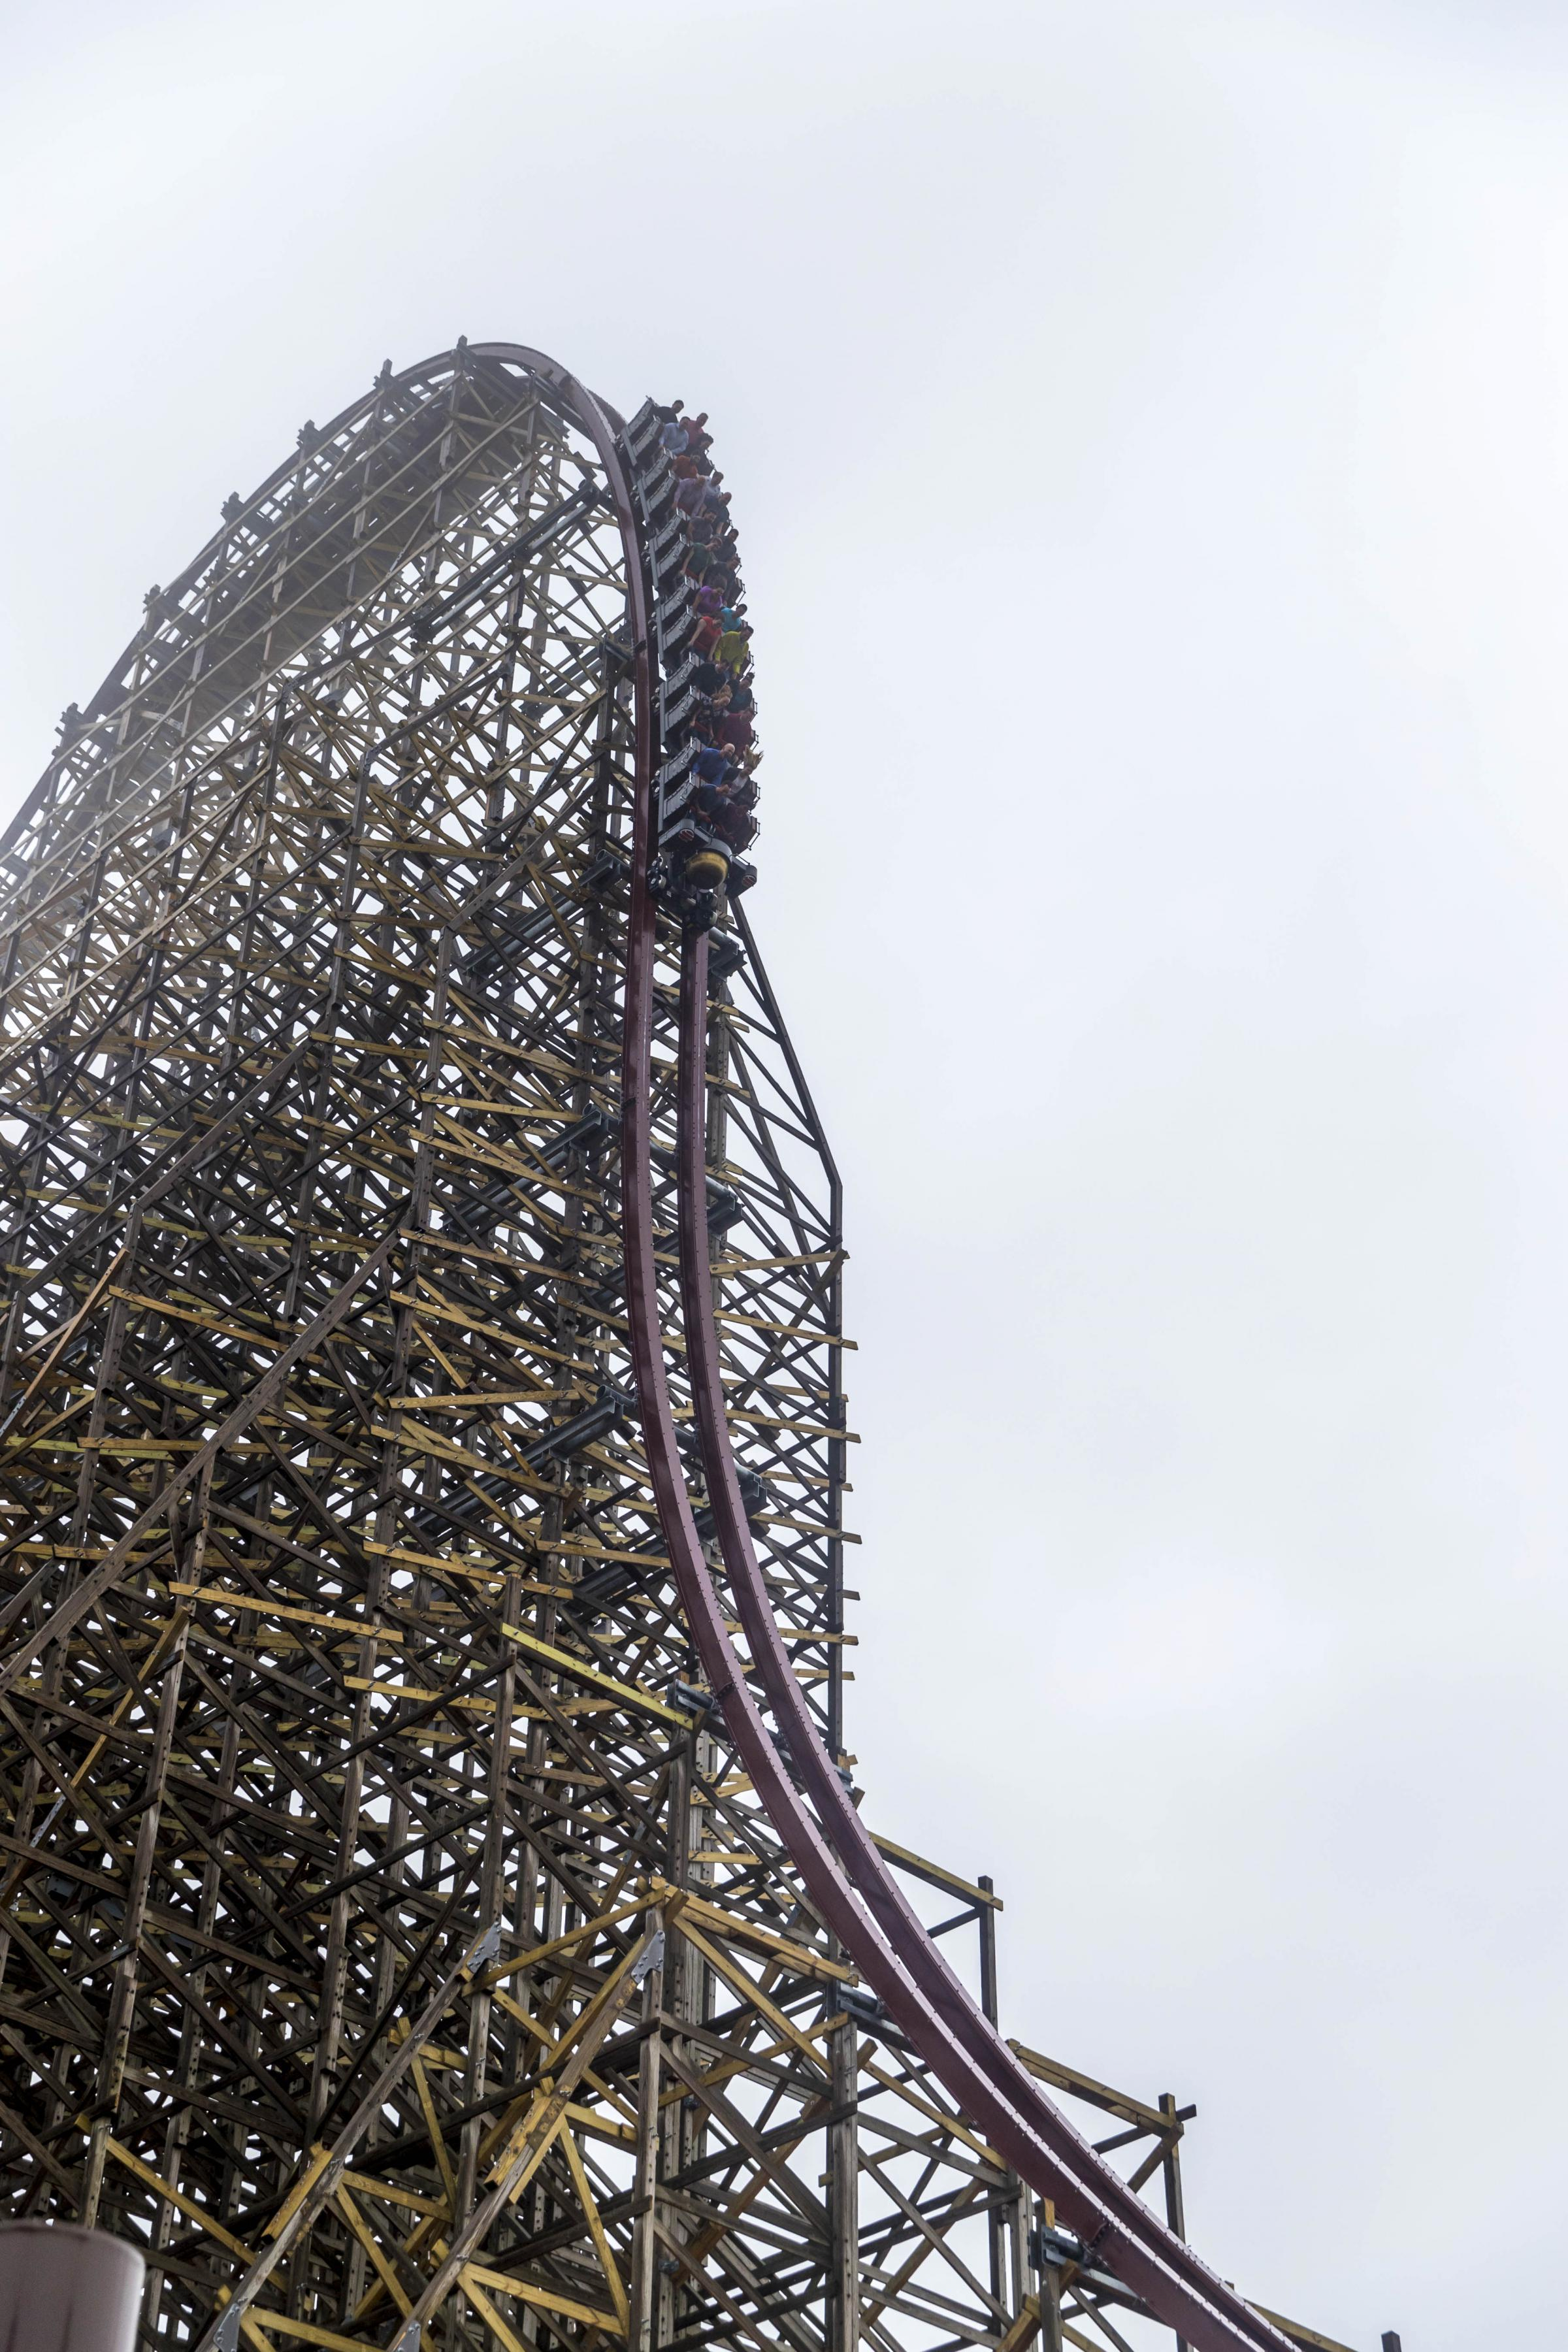 State Of The Arts A New Kind Of Wooden Coaster Twists And Turns At